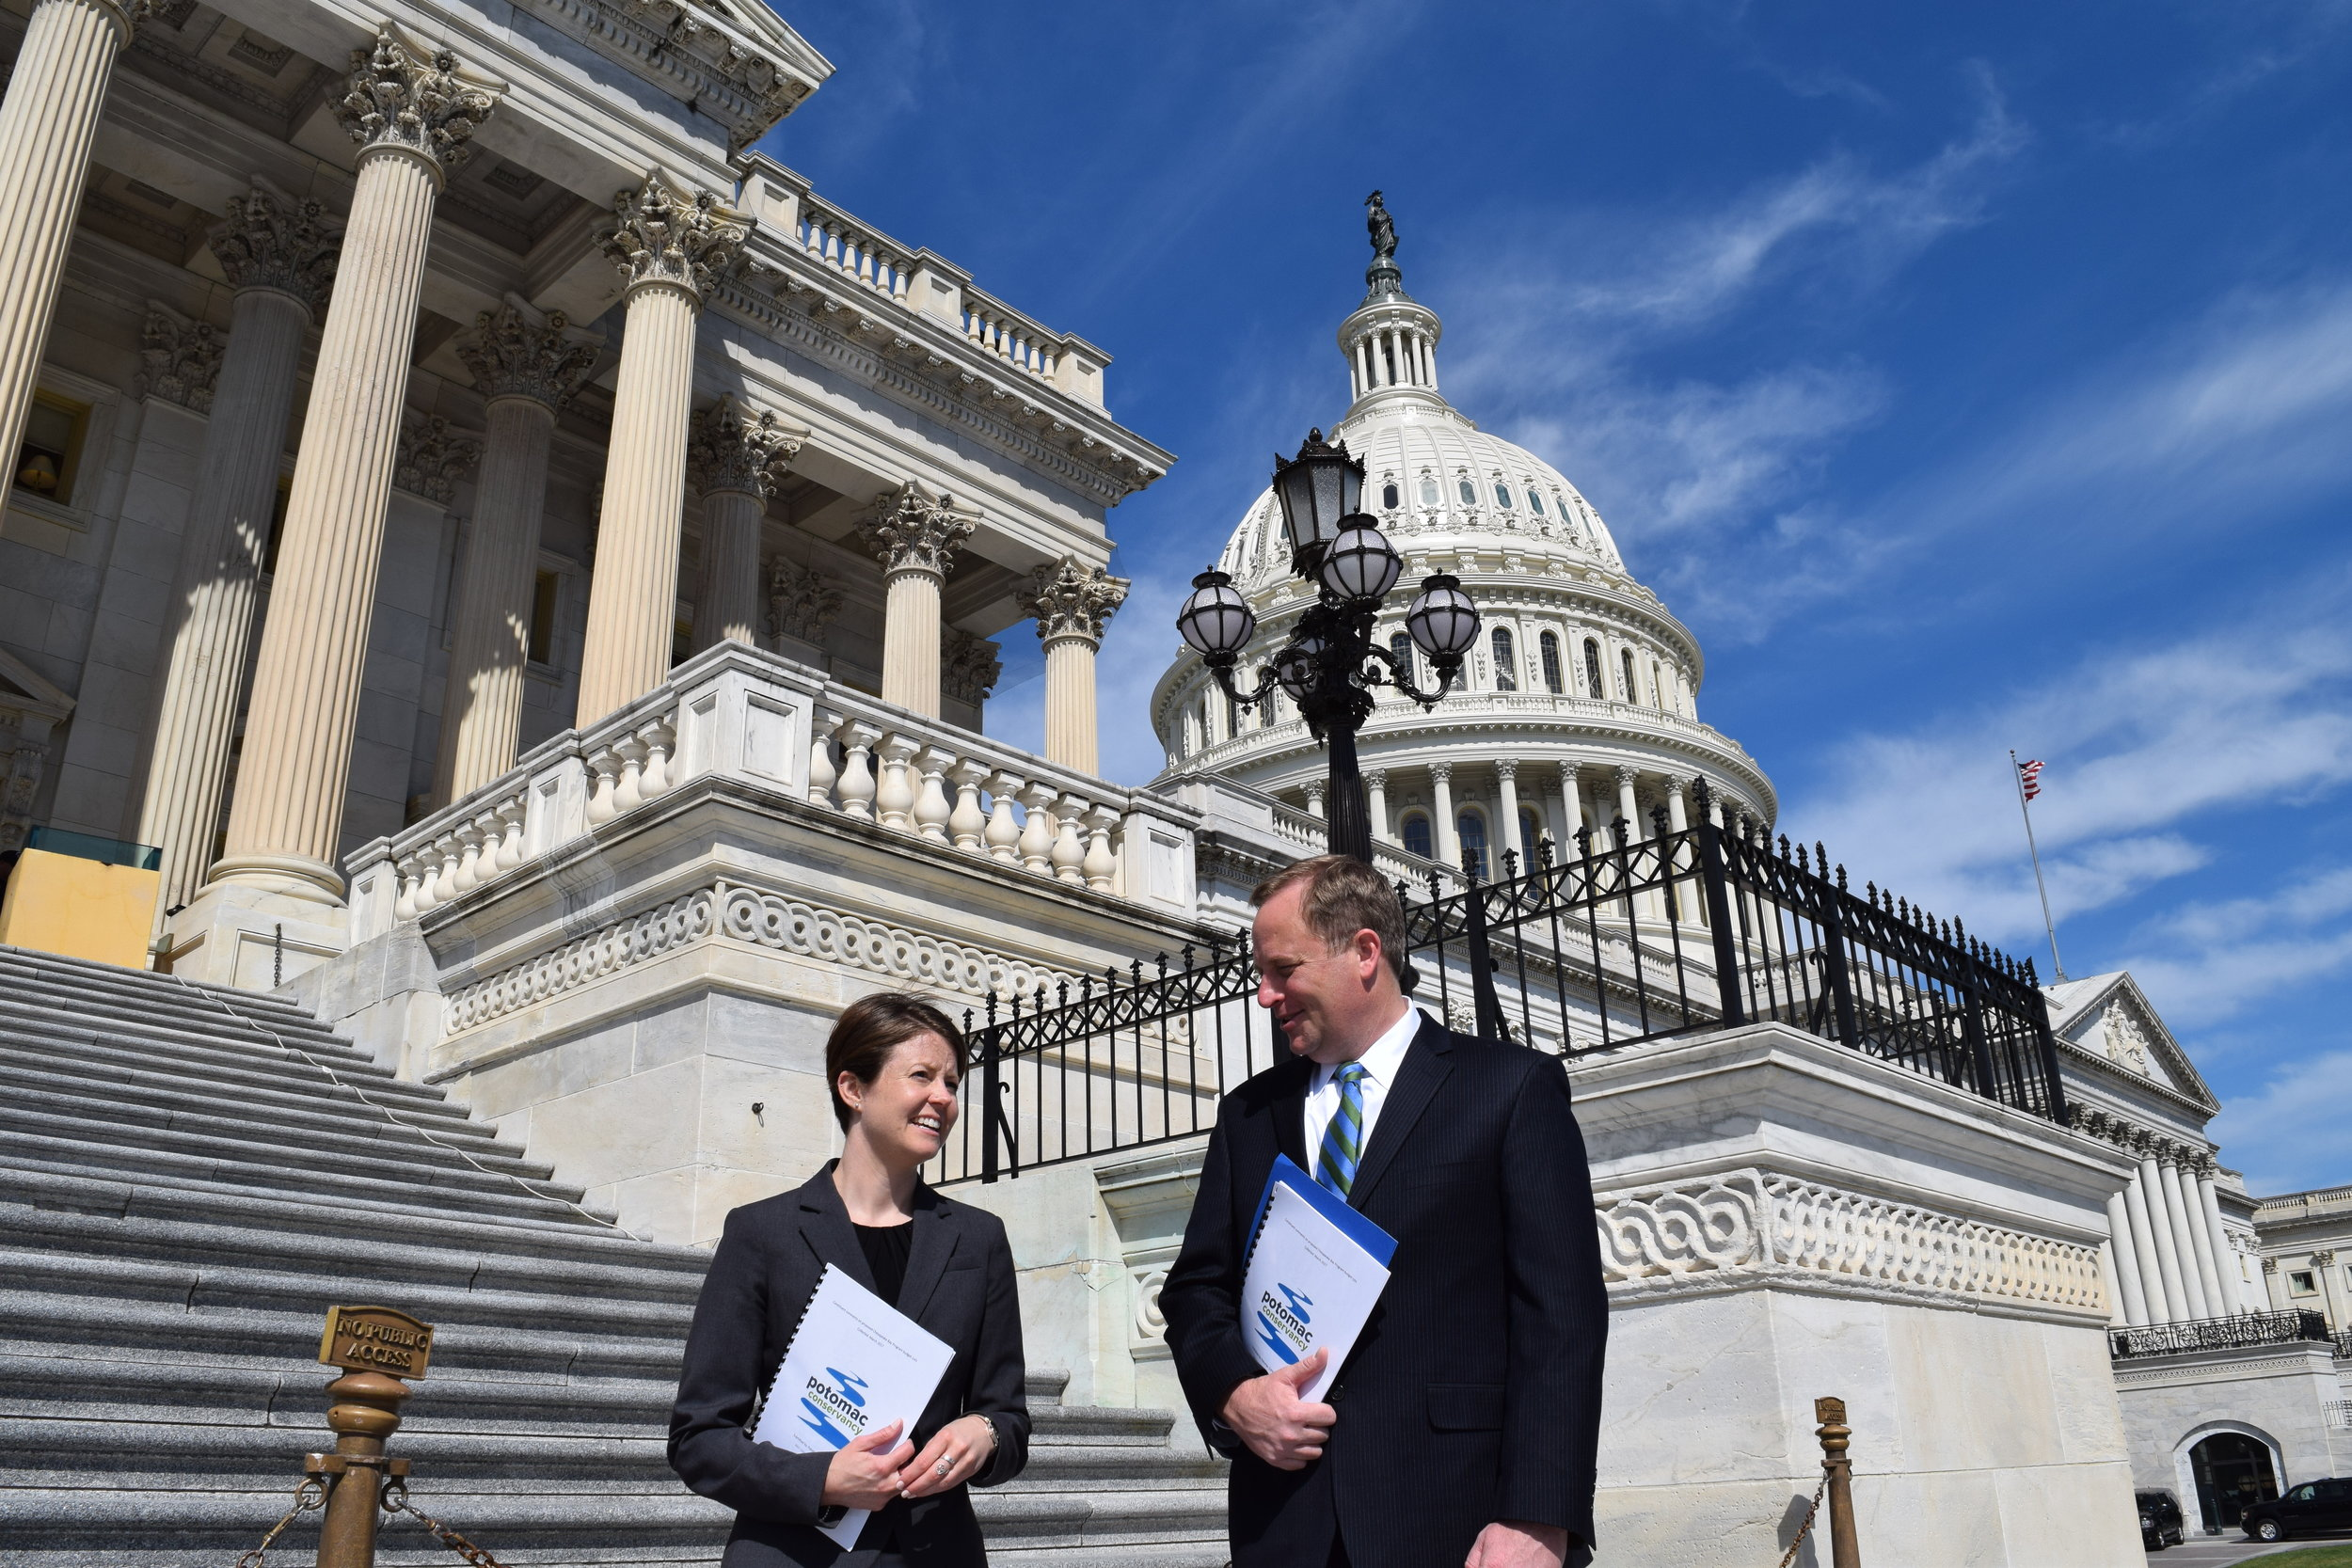 Potomac Conservancy Policy Director, Caitlin Wall, and Potomac Conservancy President, Hedrick Belin, Advocating for clean Water on Capitol Hill